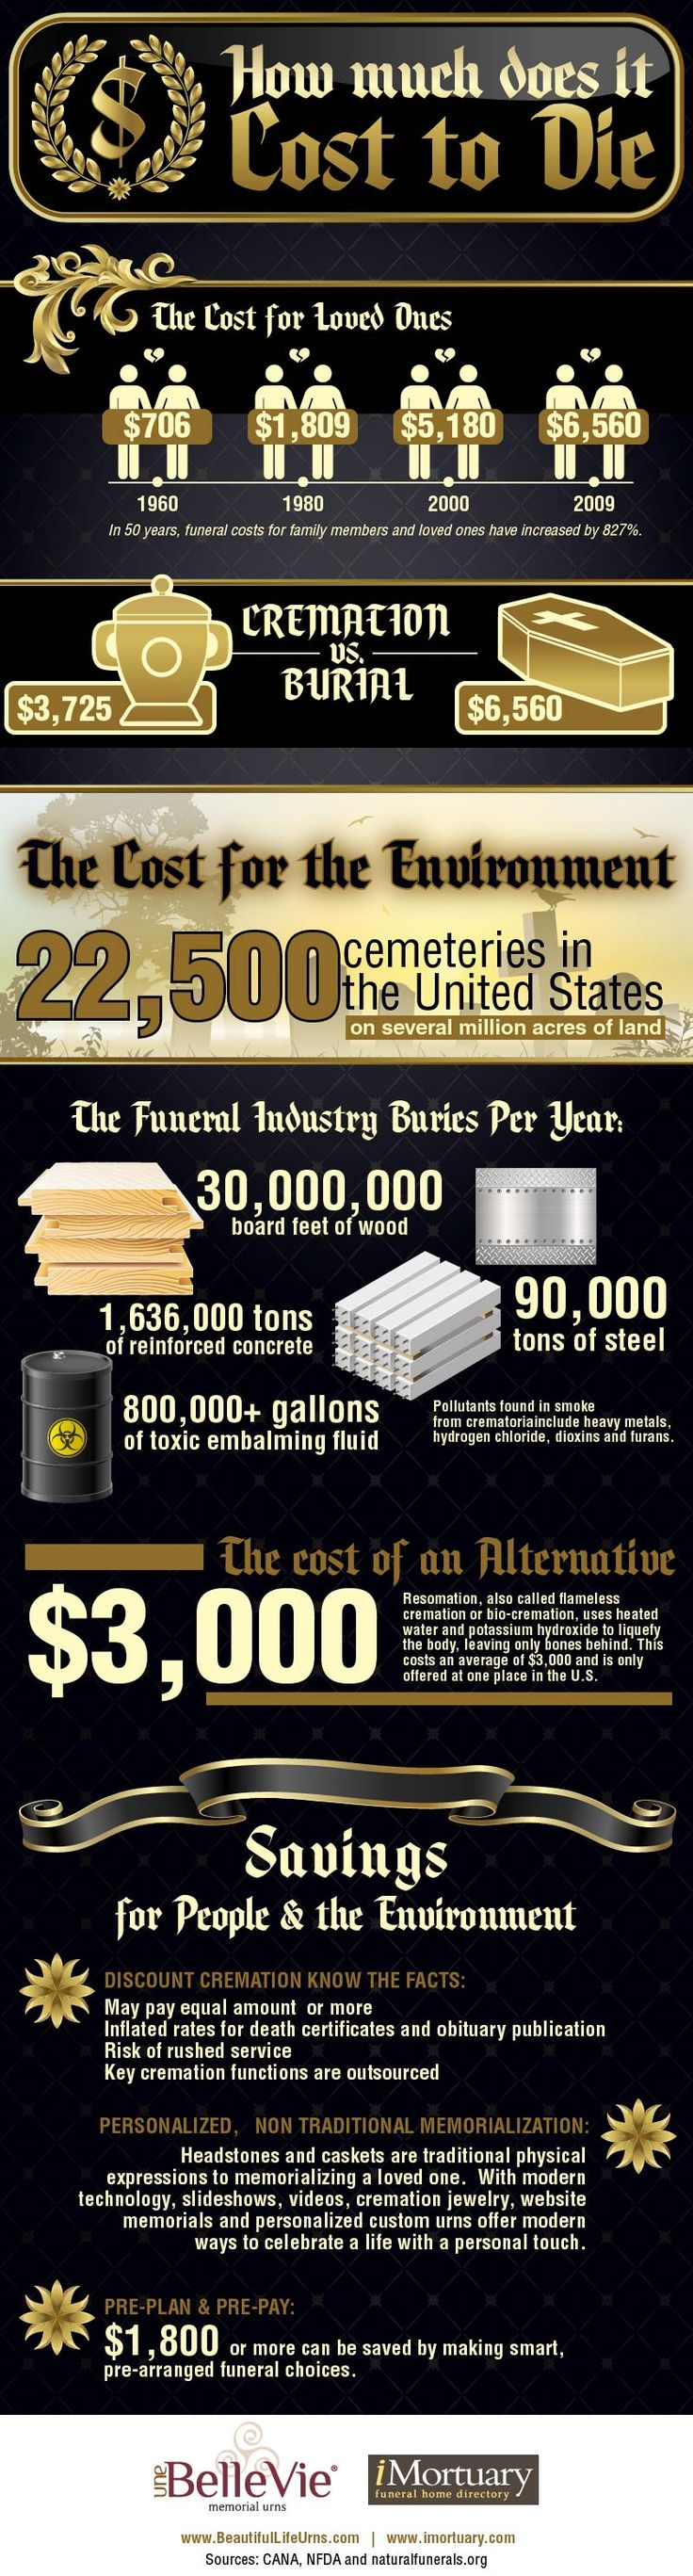 How Much Does It Cost to Die? The Answer Might Surprise You...